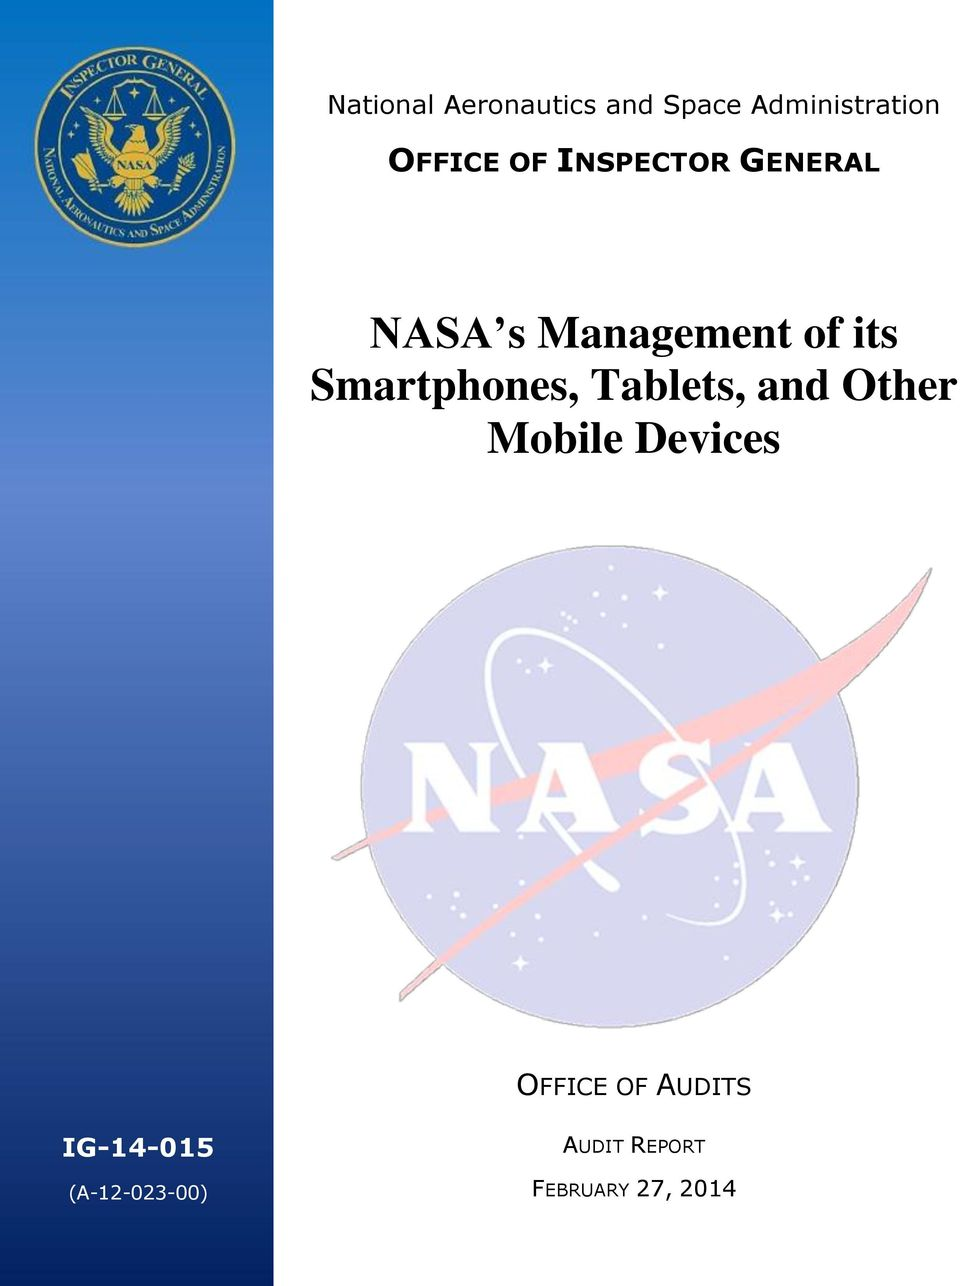 Smartphones, Tablets, and Other Mobile Devices OFFICE